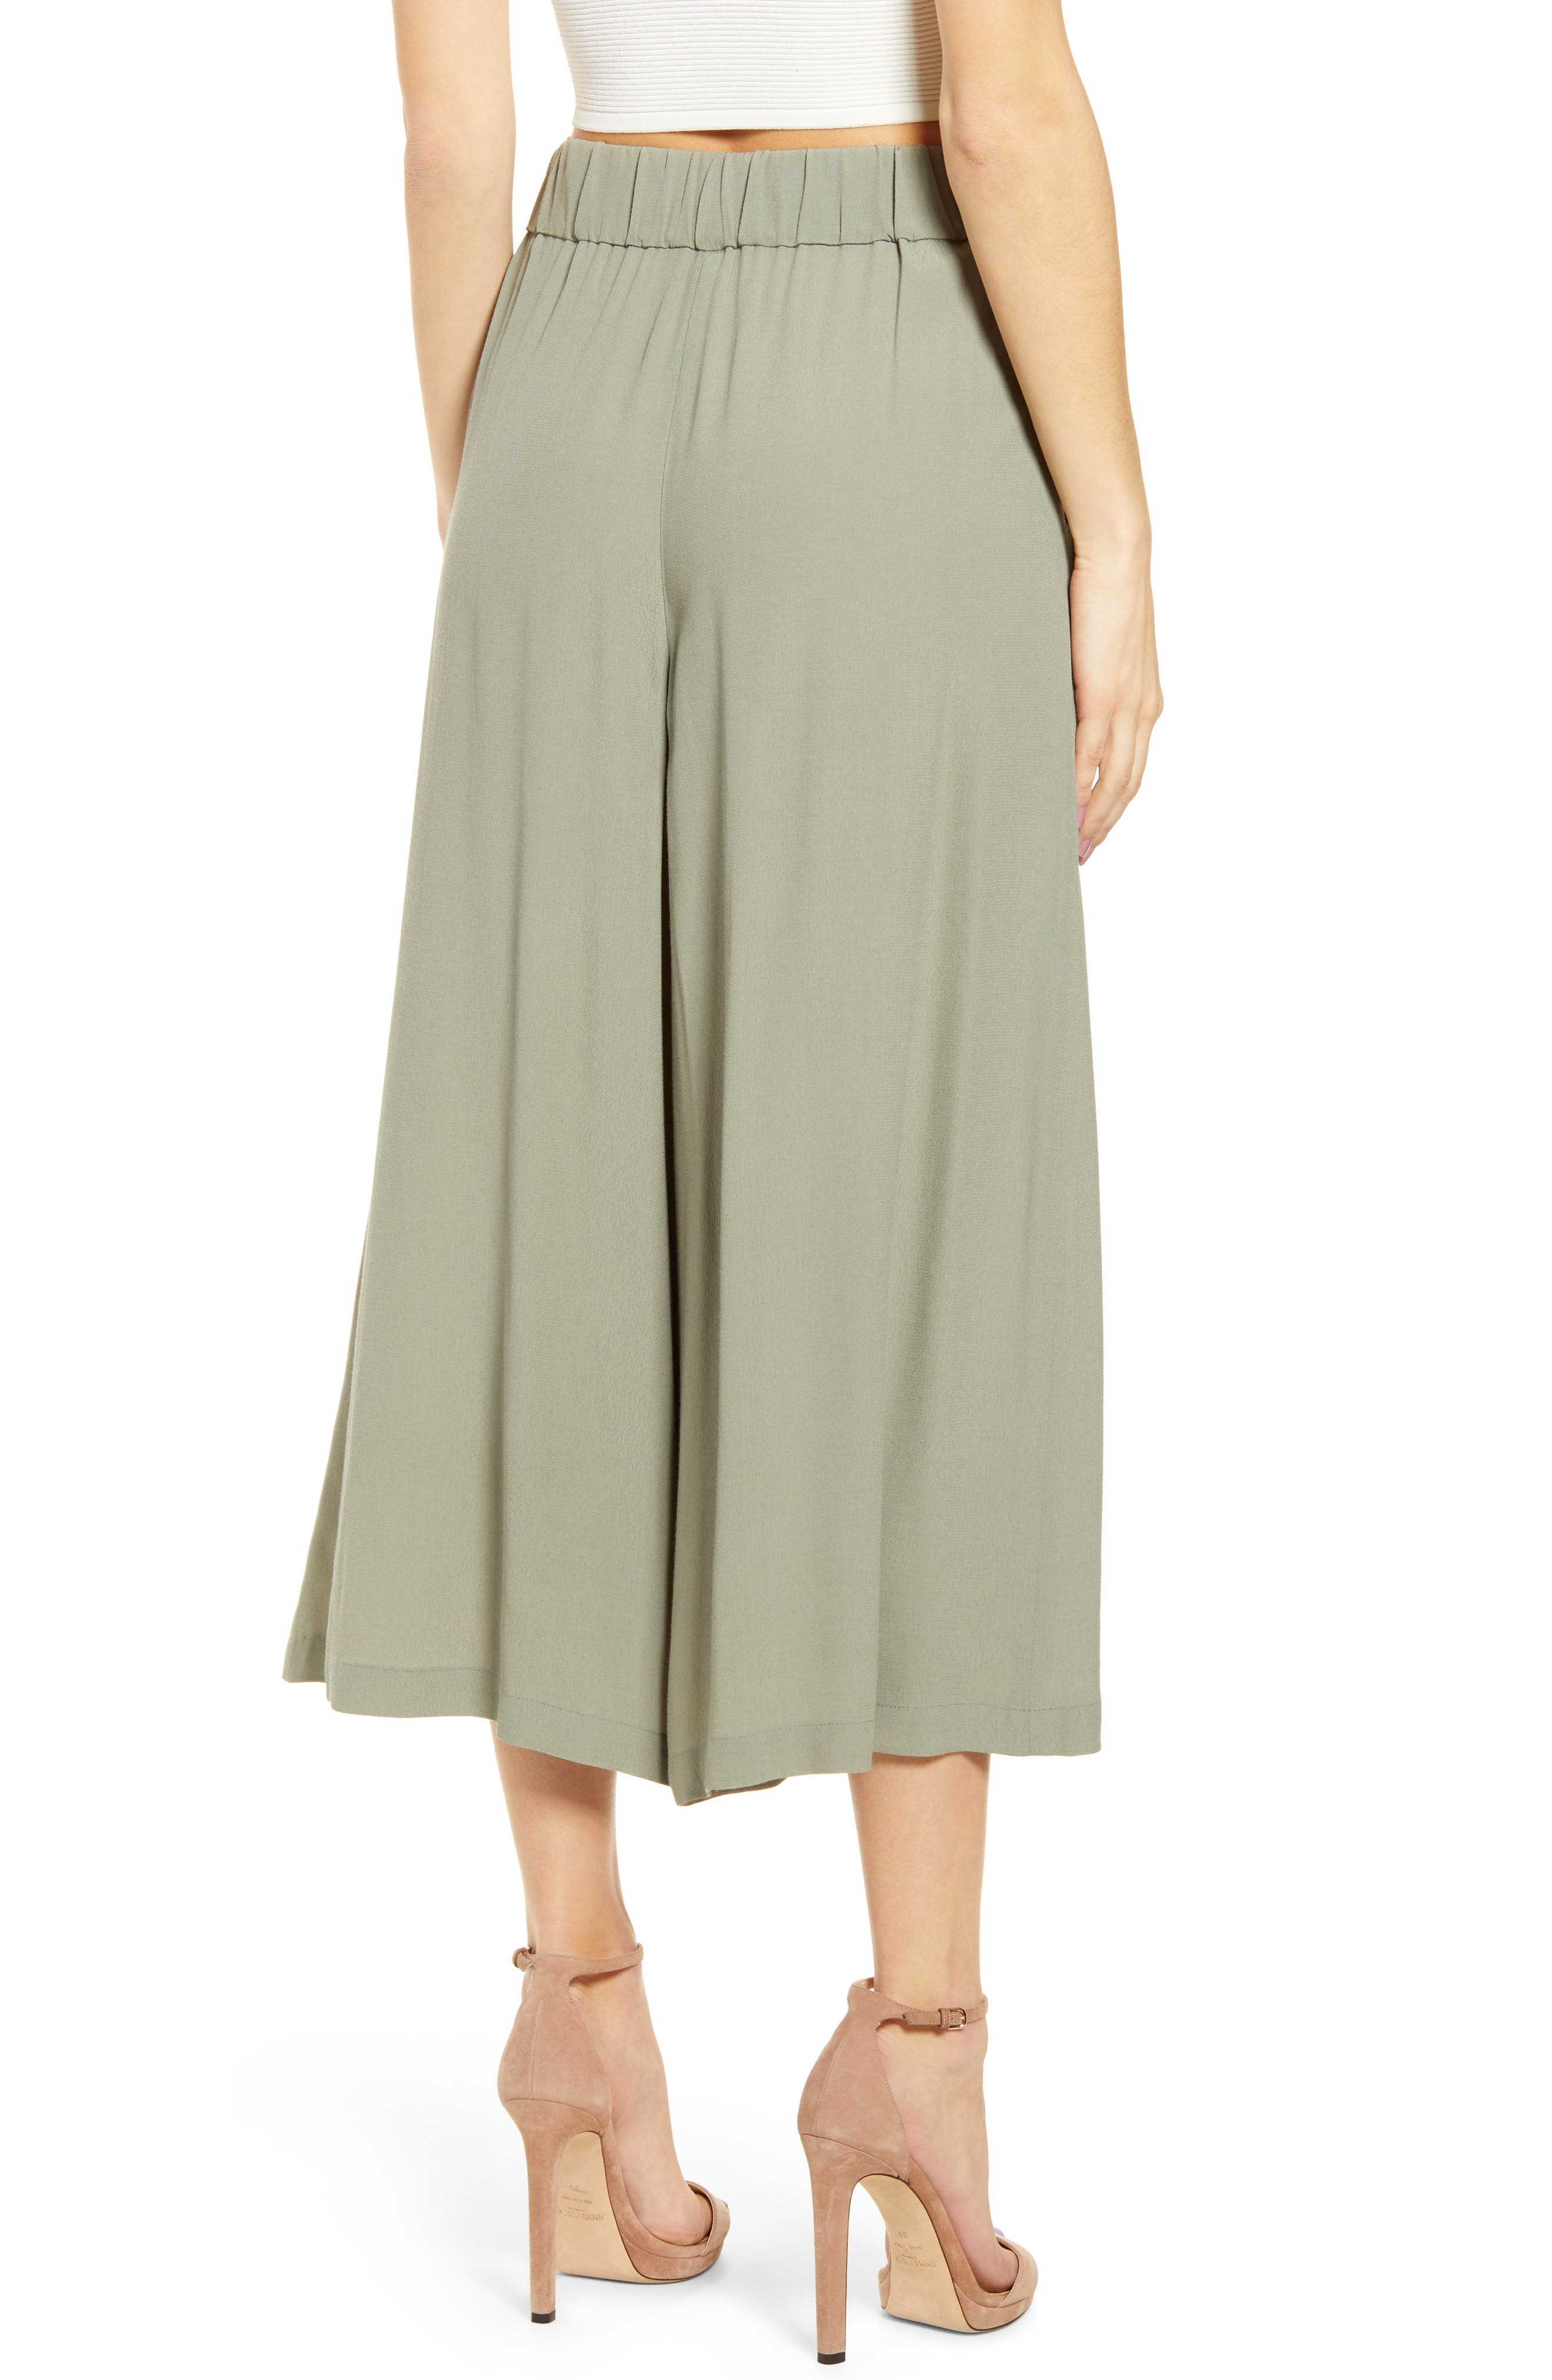 4618f75b4d07 Women's Fashion Trends: Clothing, Shoes & Accessories | Nordstrom